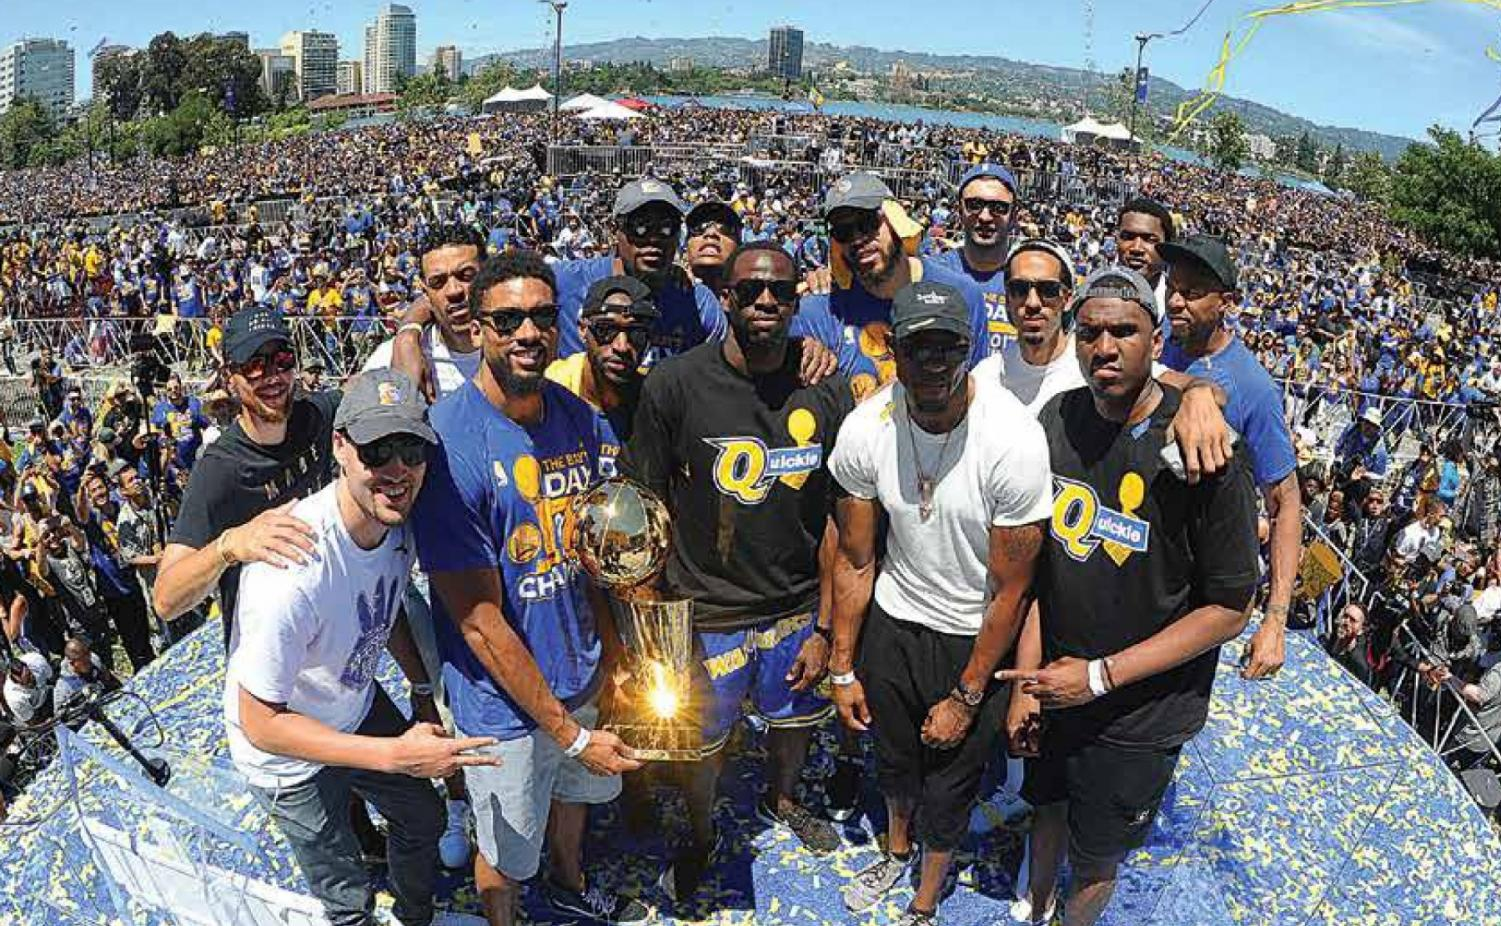 The Golden State Warriors celebrated another NBA Championship season this past summer with a parade in Downtown Oakland.